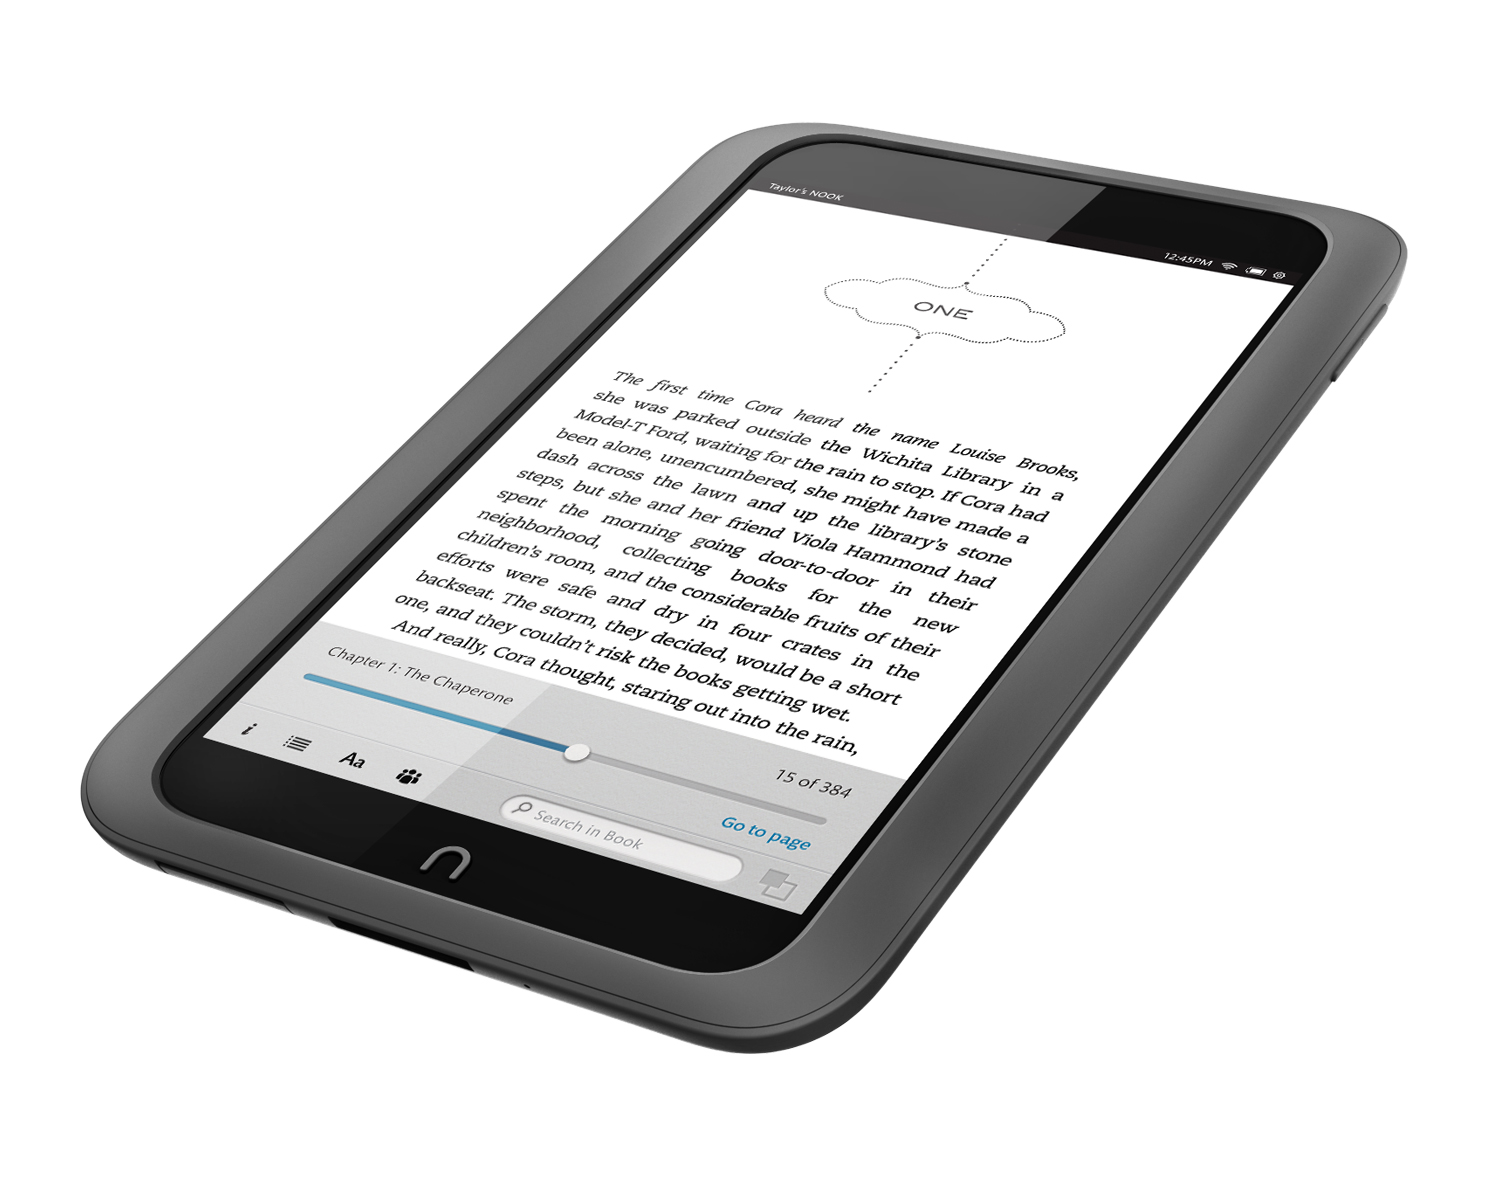 Higher-resolution display — The Nook HD 1440 x 900 display bests Kindle Fire HD's 1280 x 800.